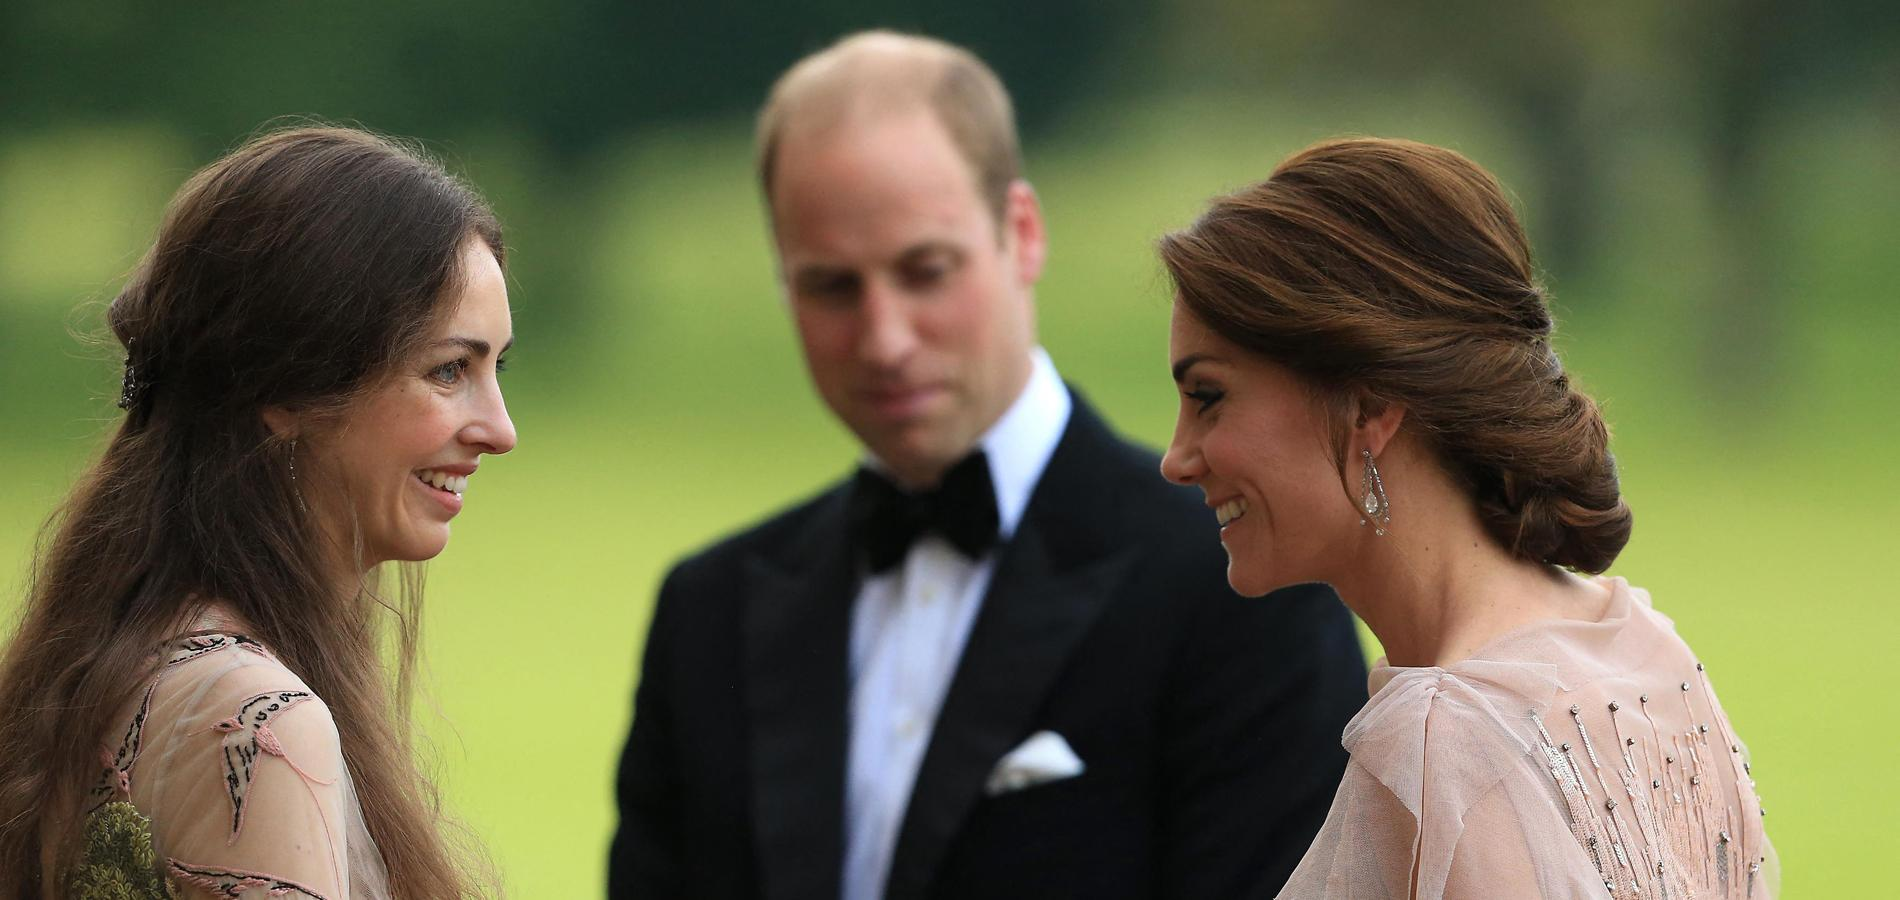 Rose Hanbury, la supposée maîtresse du prince William évincée par Kate Middleton